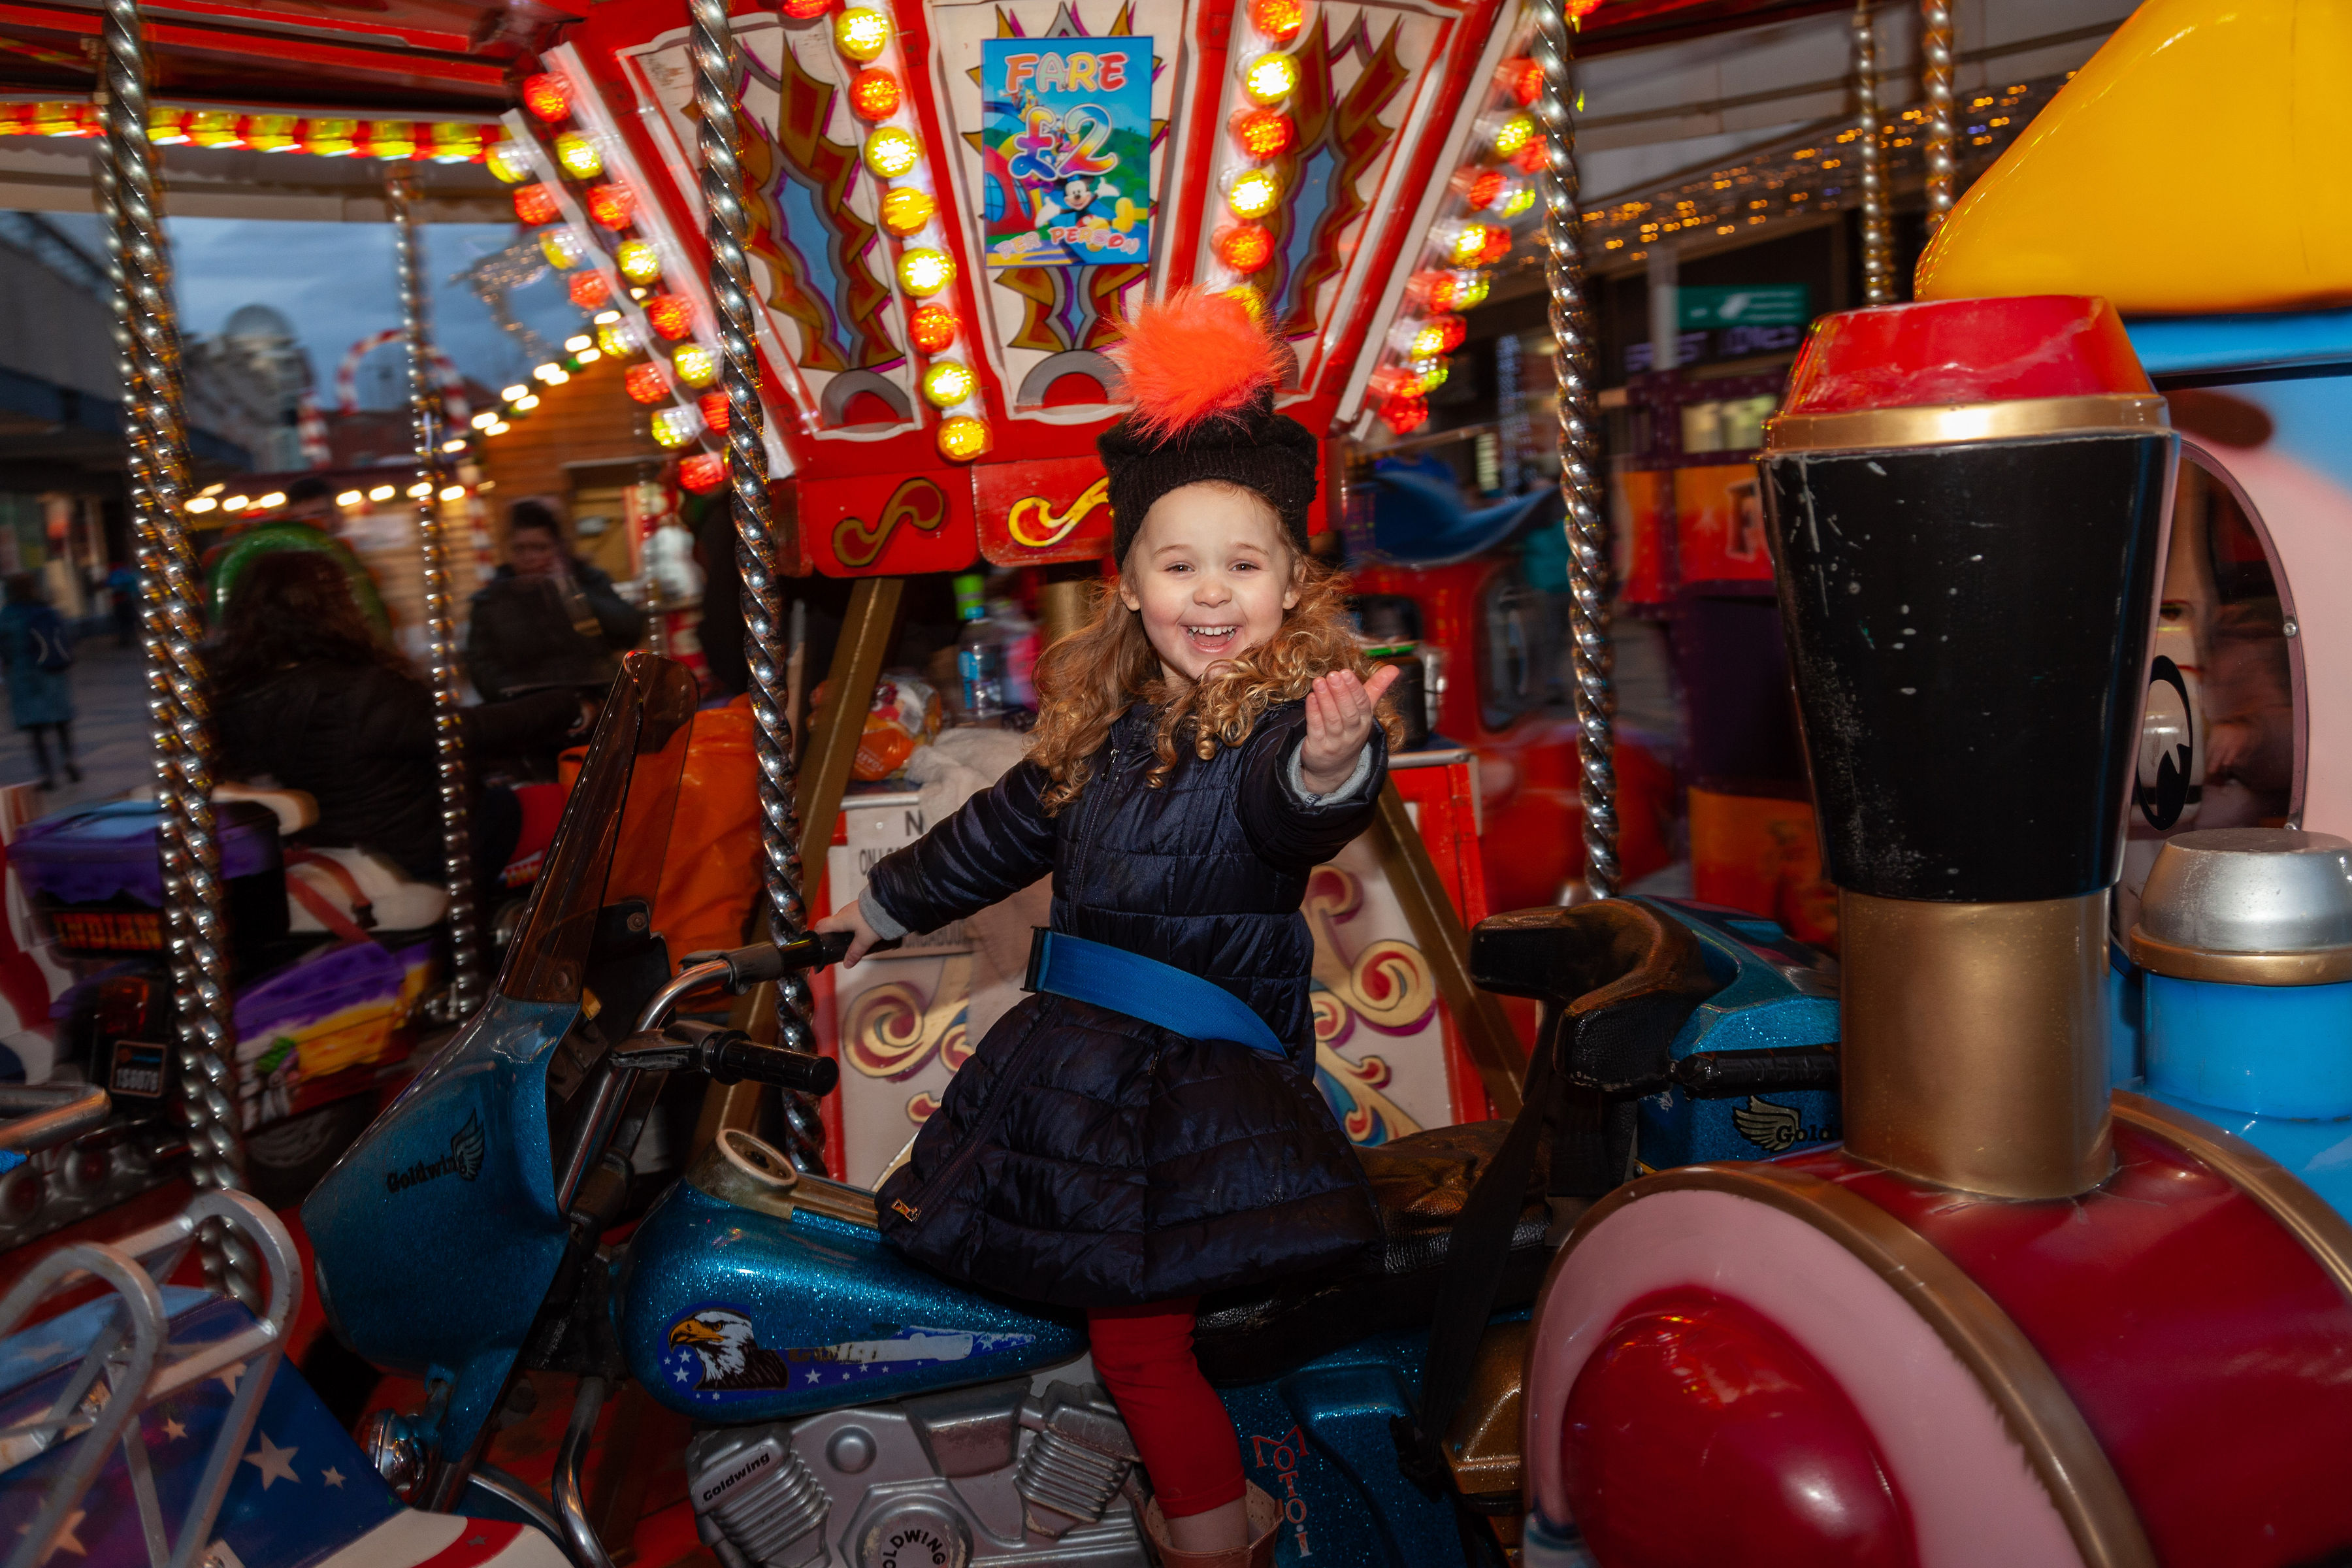 PolarExpress_08122019_104_--MatthewNicholPhotography